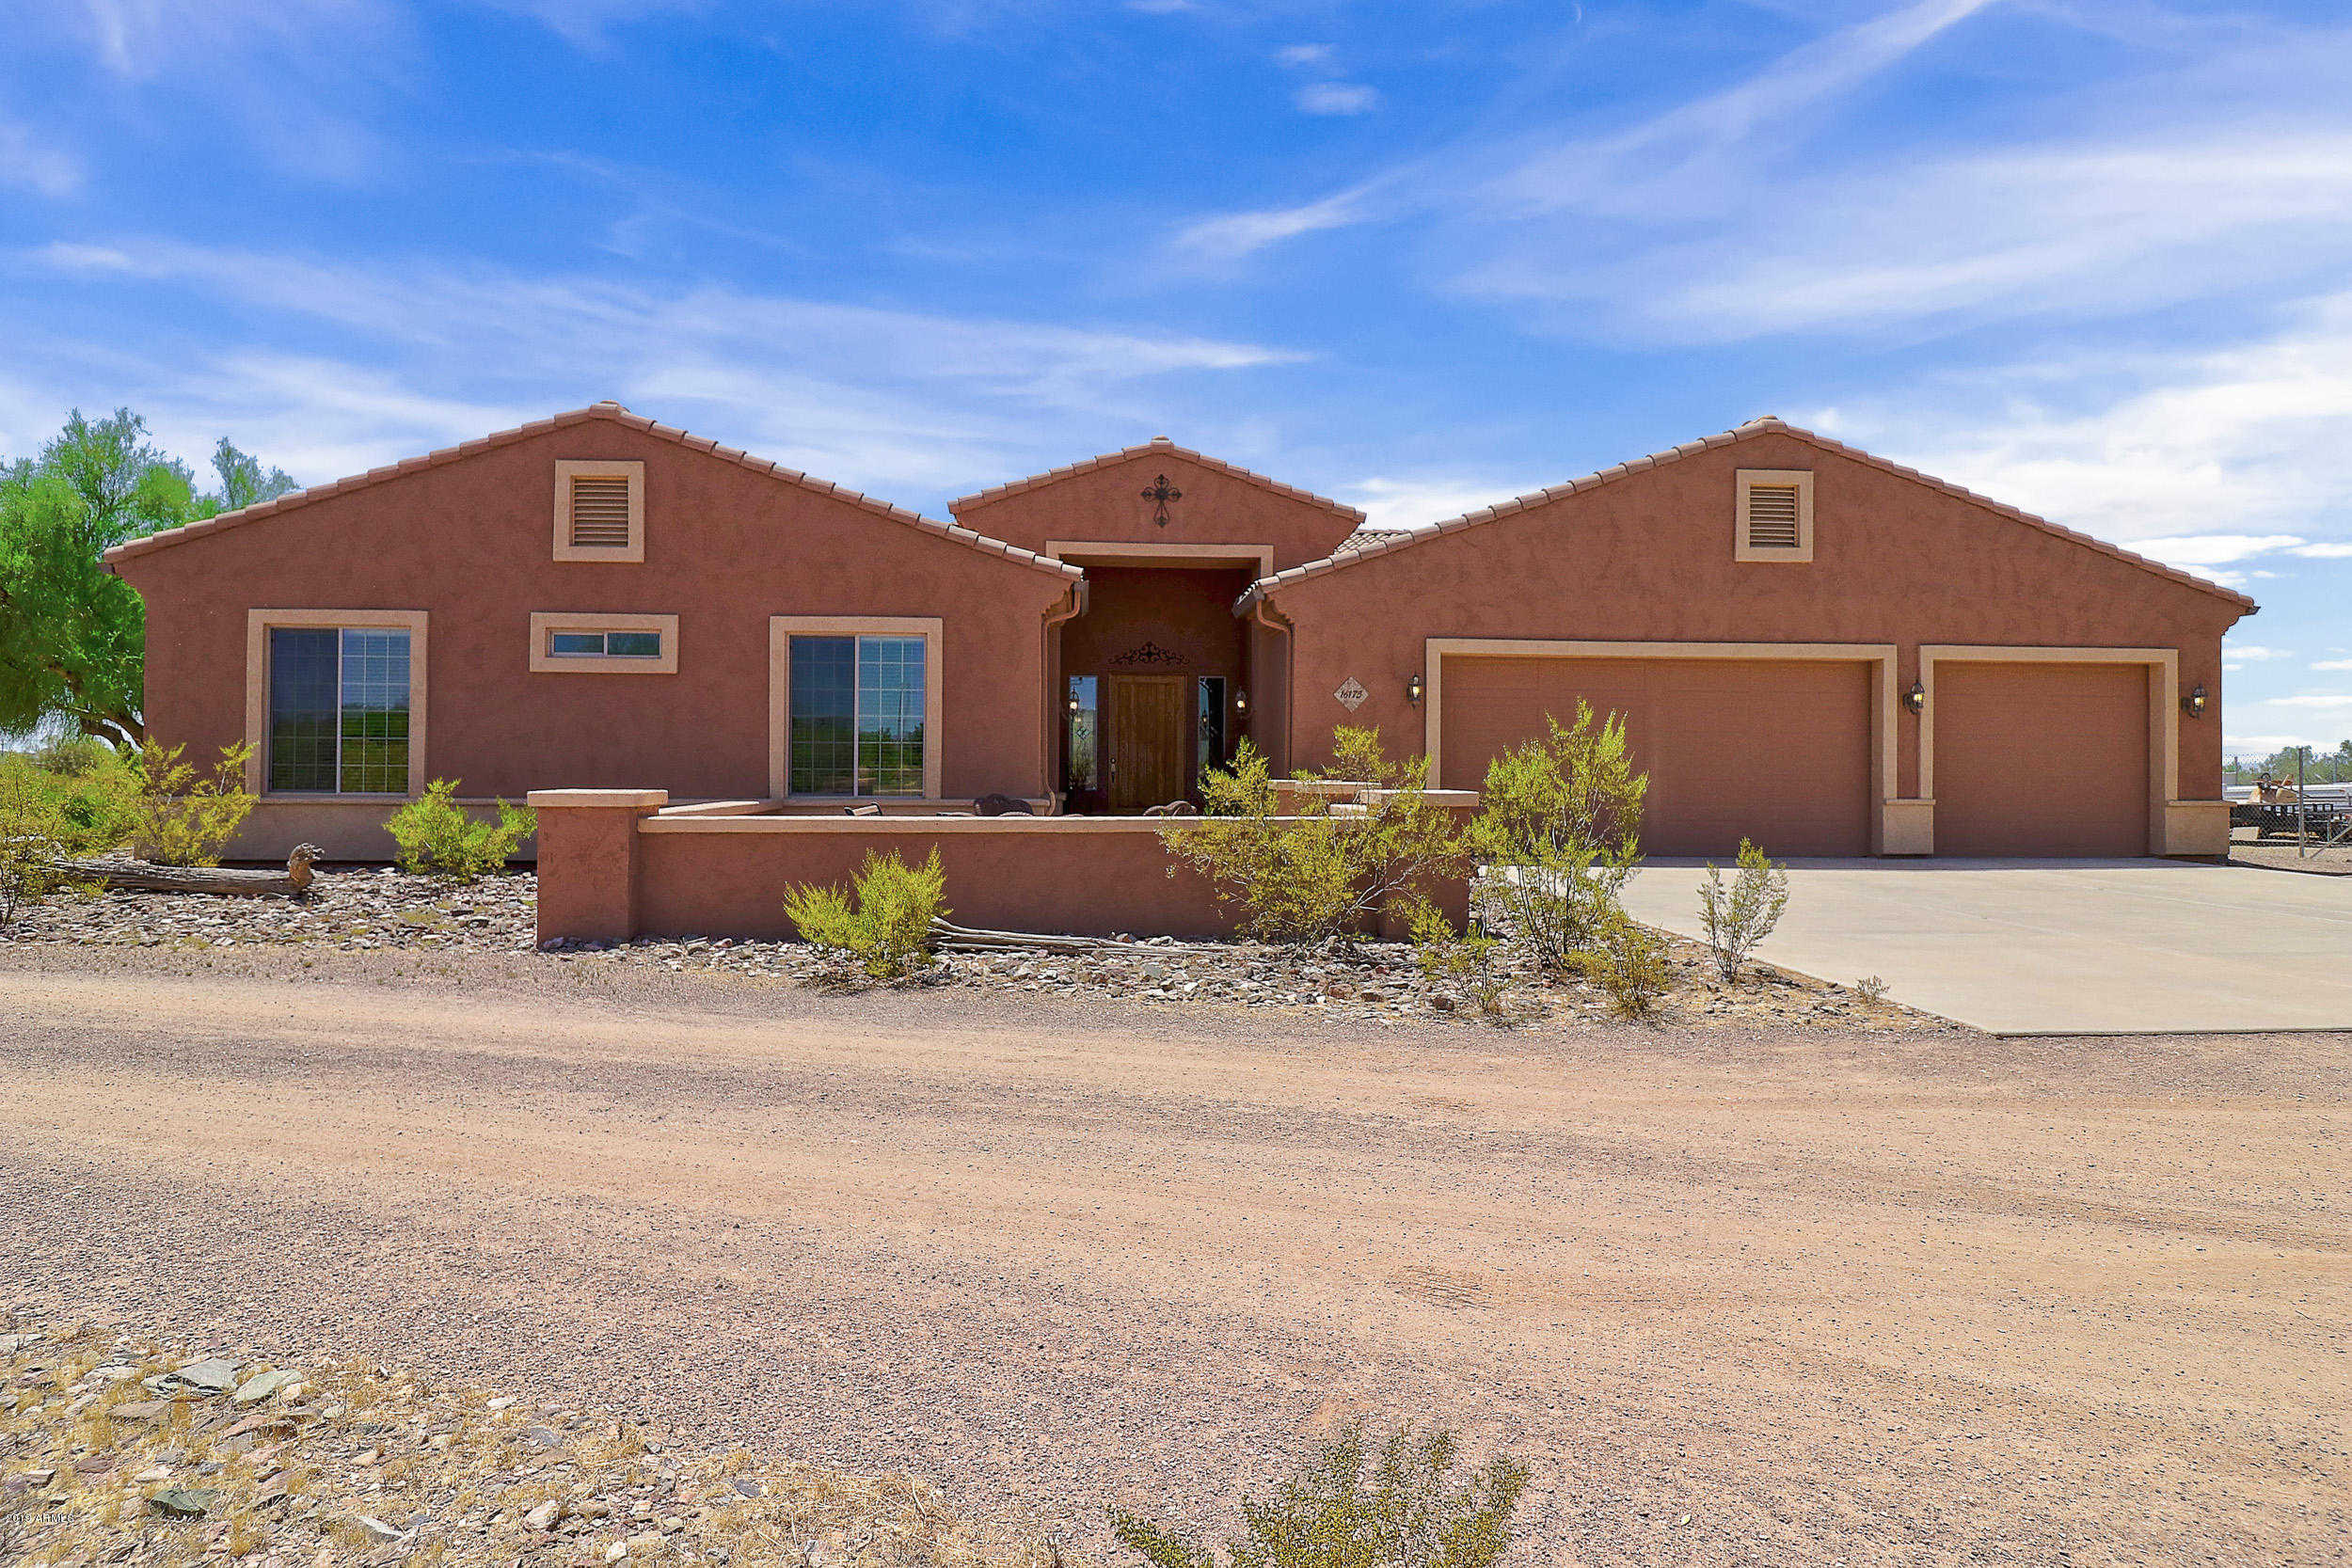 Homes for Sale in Surprise - Jami Tadda — RE/MAX Renaissance